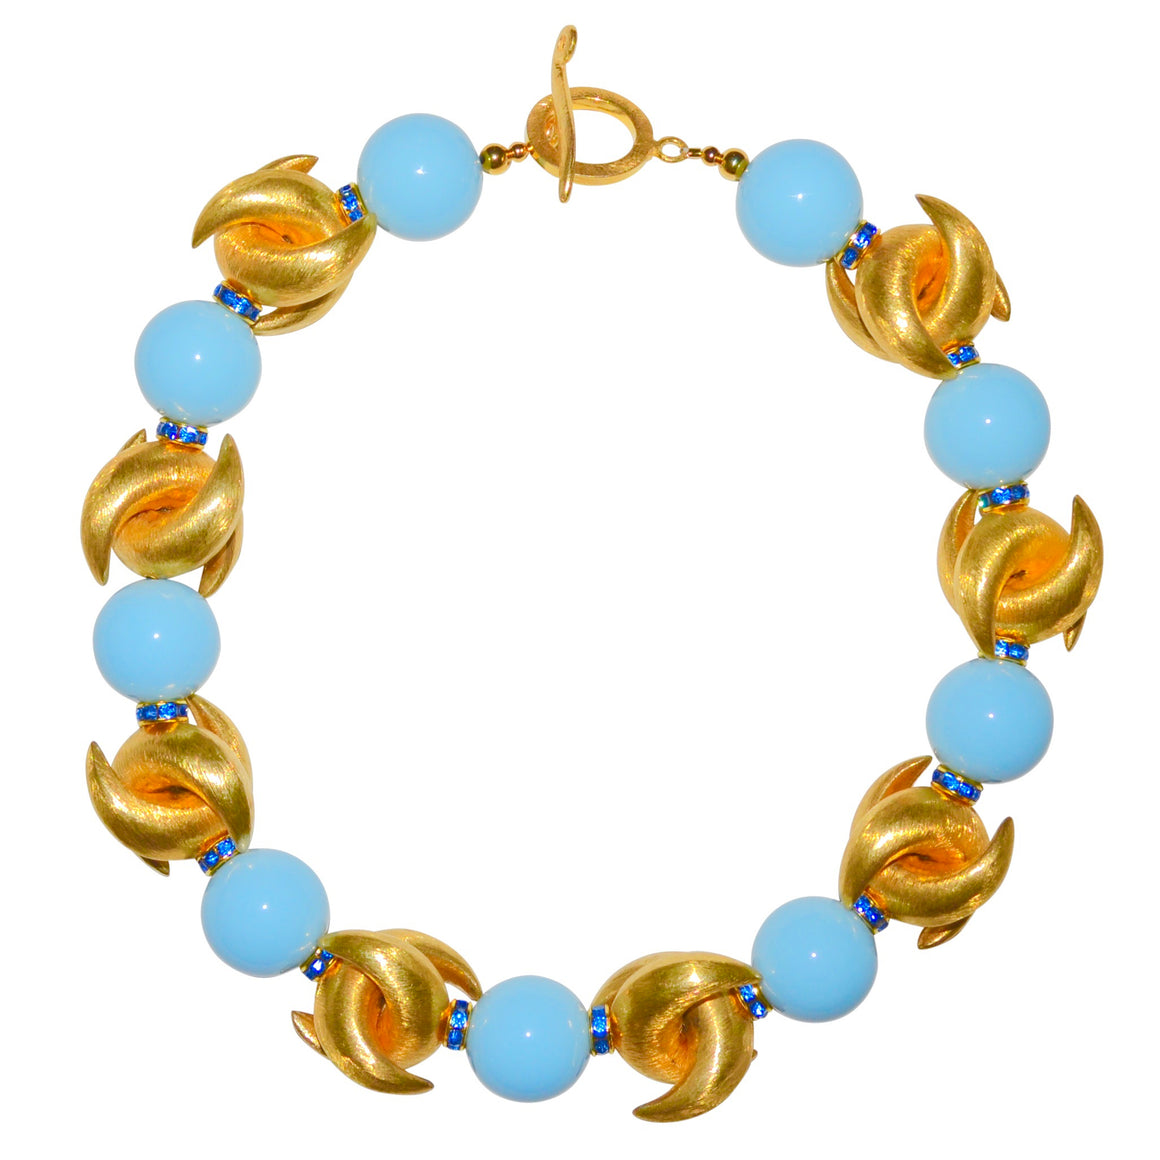 LUNA NECKLACE IN GOLD AND LIGHT BLUE